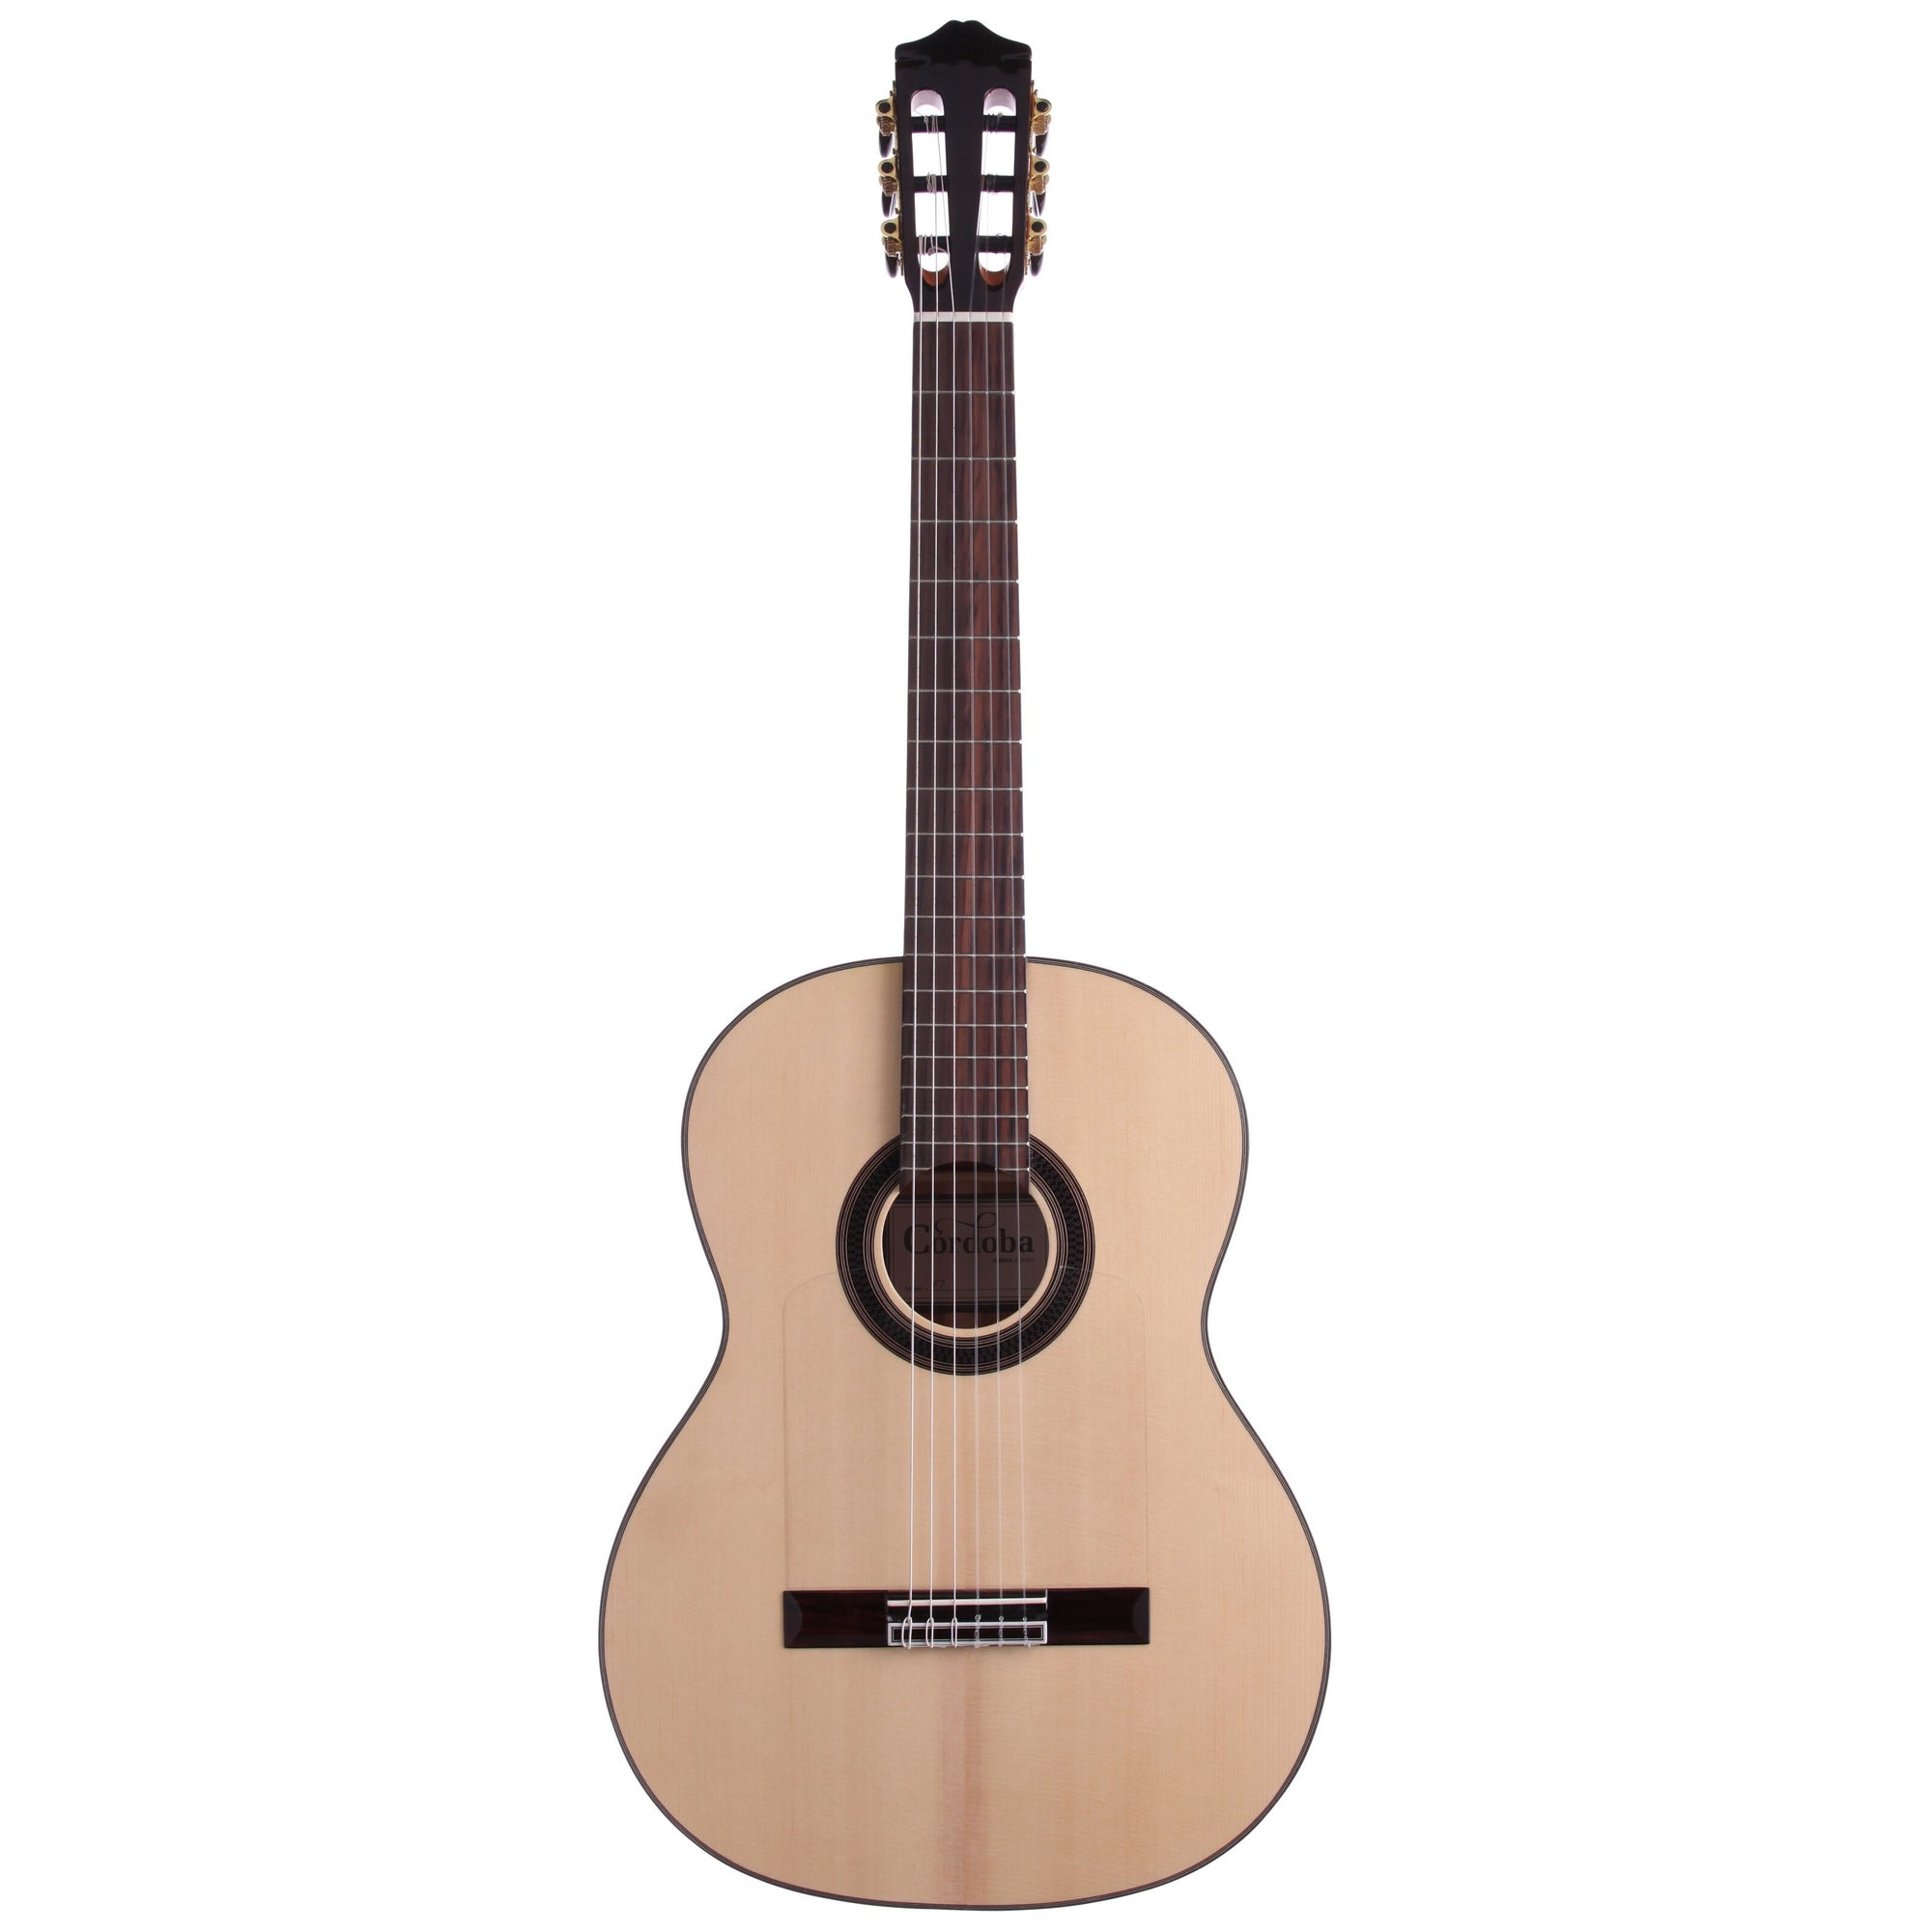 Cordoba F7 Flamenco Classical Acoustic Guitar